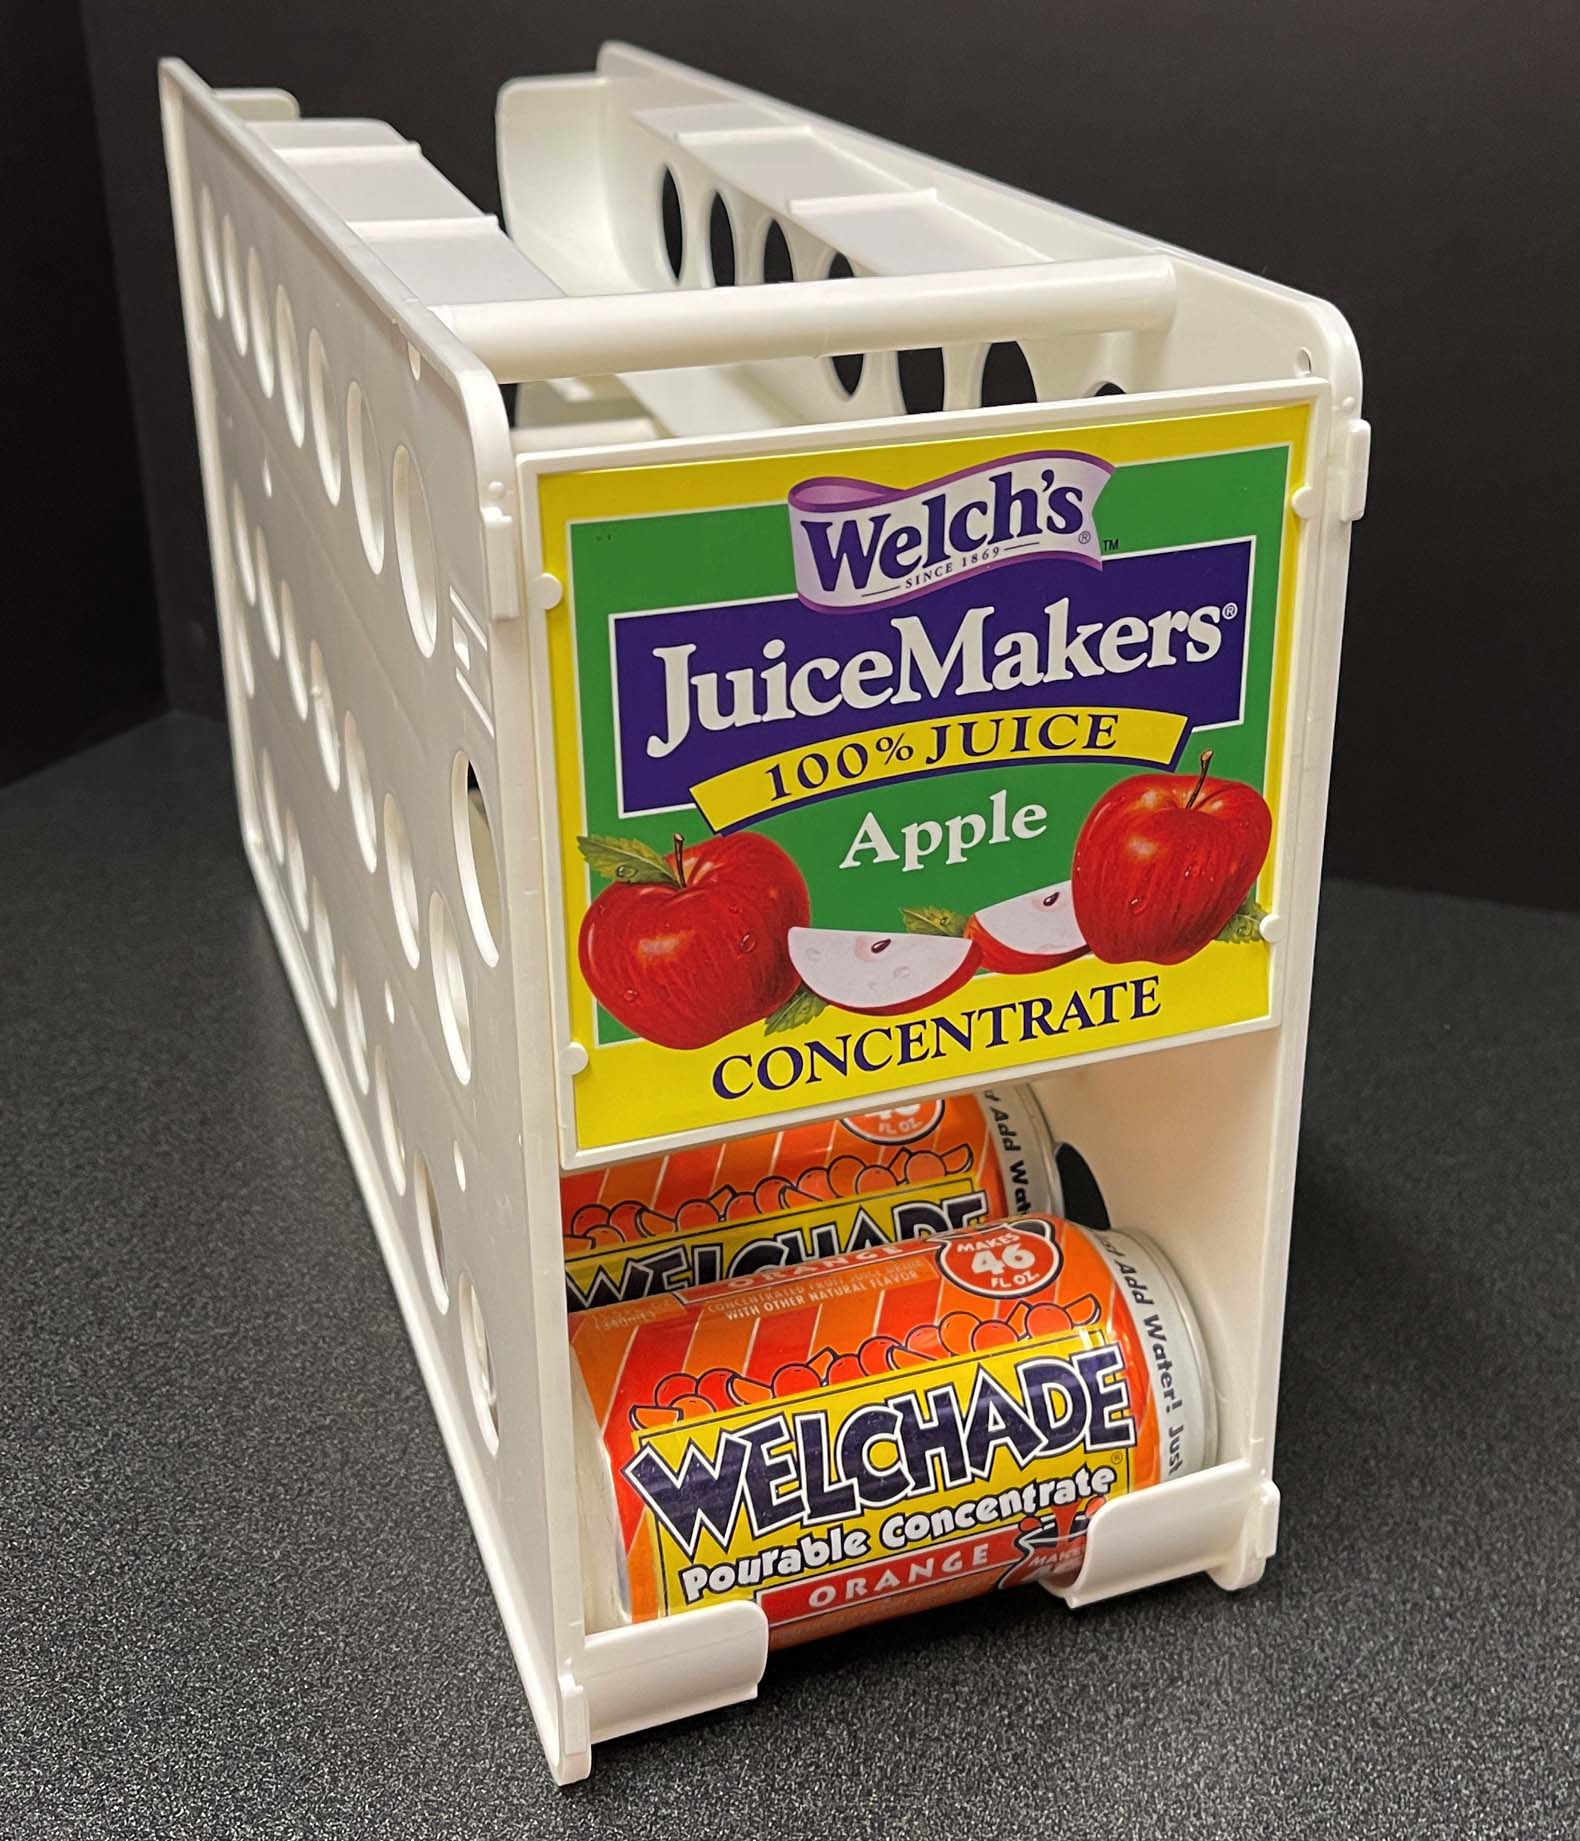 Product Merchandising - Welches